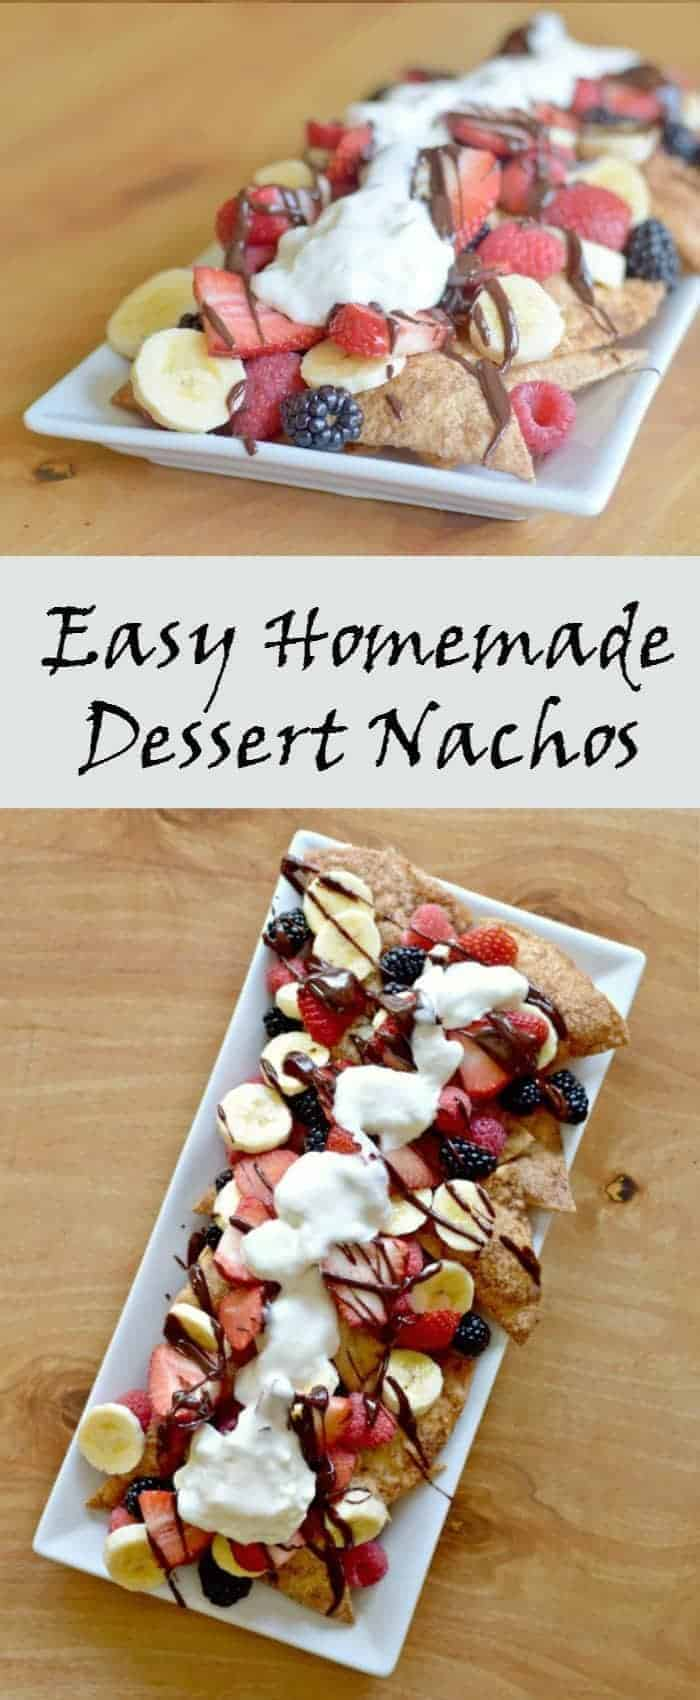 Easy Homemade Dessert Nachos Recipe With Cinnamon Sugar Tortilla Chips Mexican Chocolate Sauce And Fresh